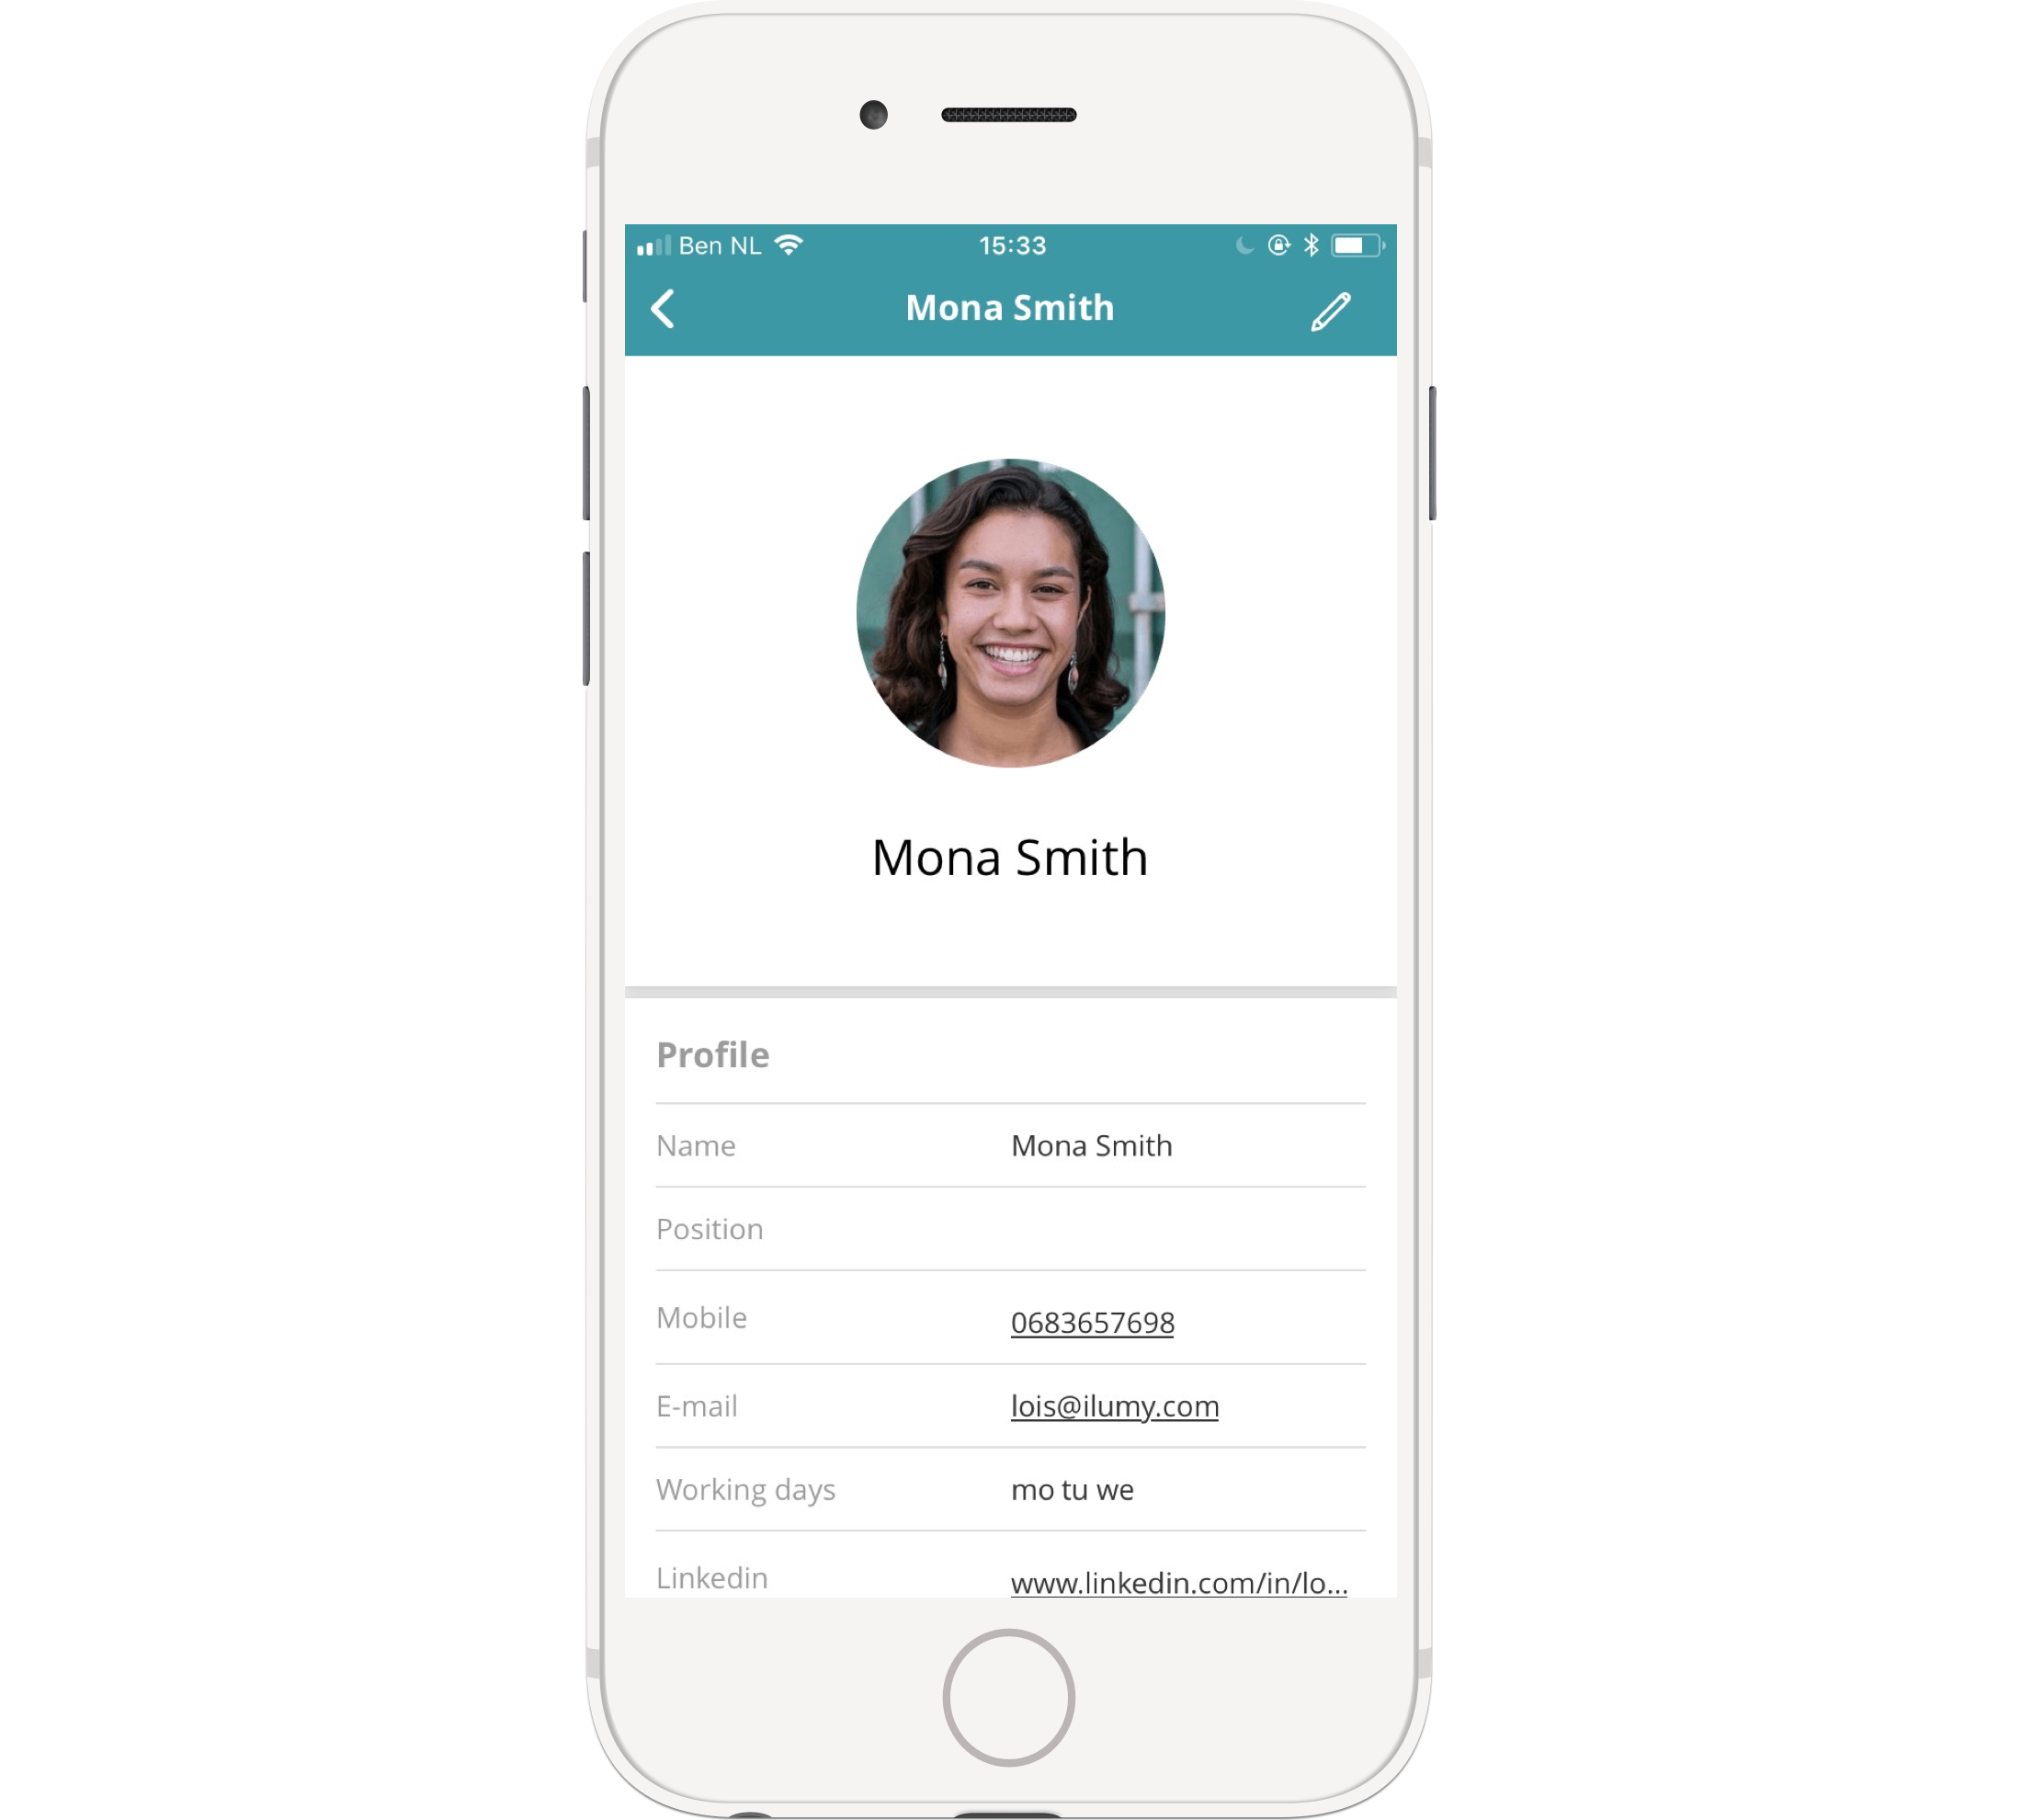 Look up a colleague in the app on your phone and click their phone number or email address to get in touch.